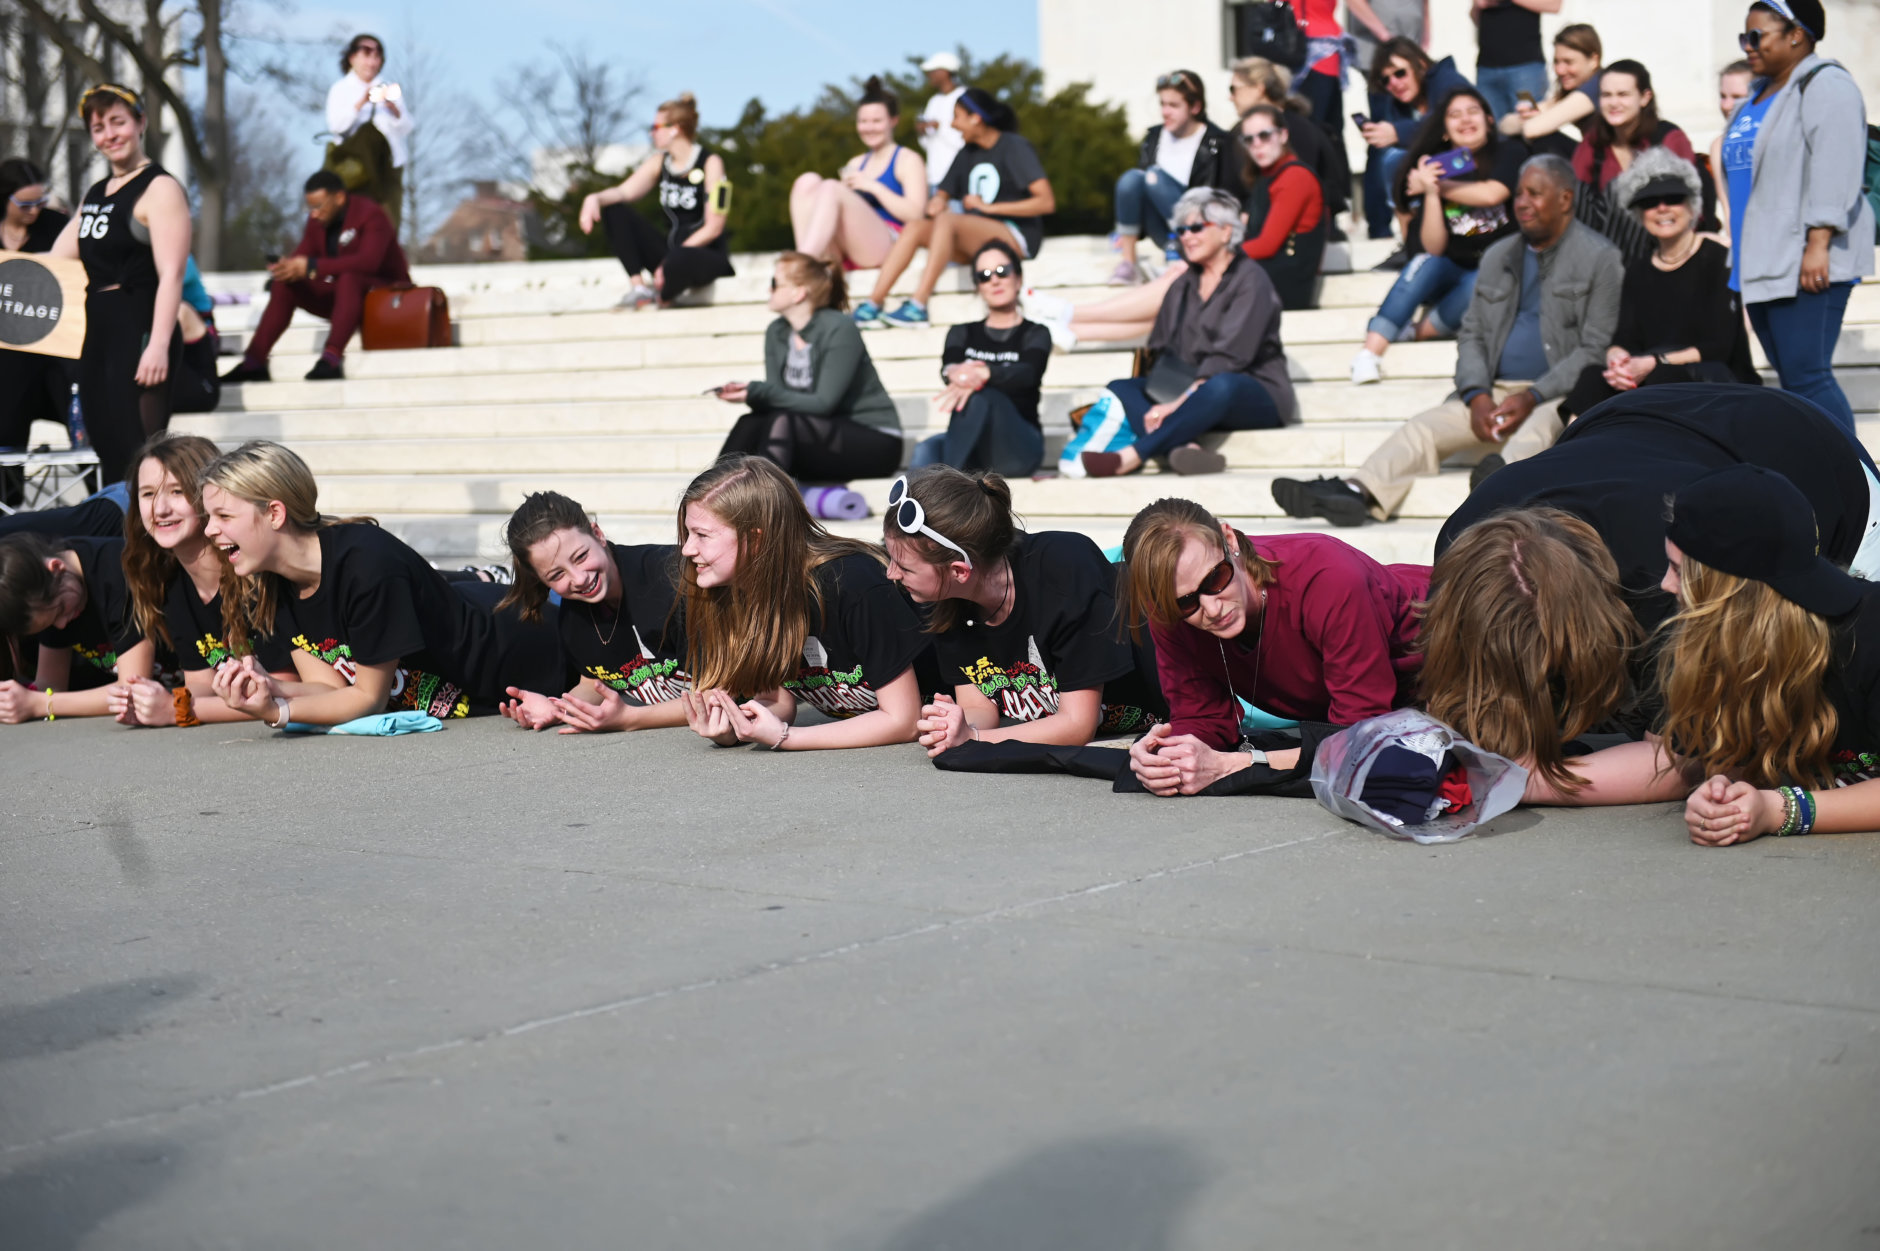 A group of tourists walking by the Supreme Court join in on the birthday celebration for Justice Ginsburg A perfect side plank in honor of Justice Ginsburg. (Courtesy Shannon Finney)